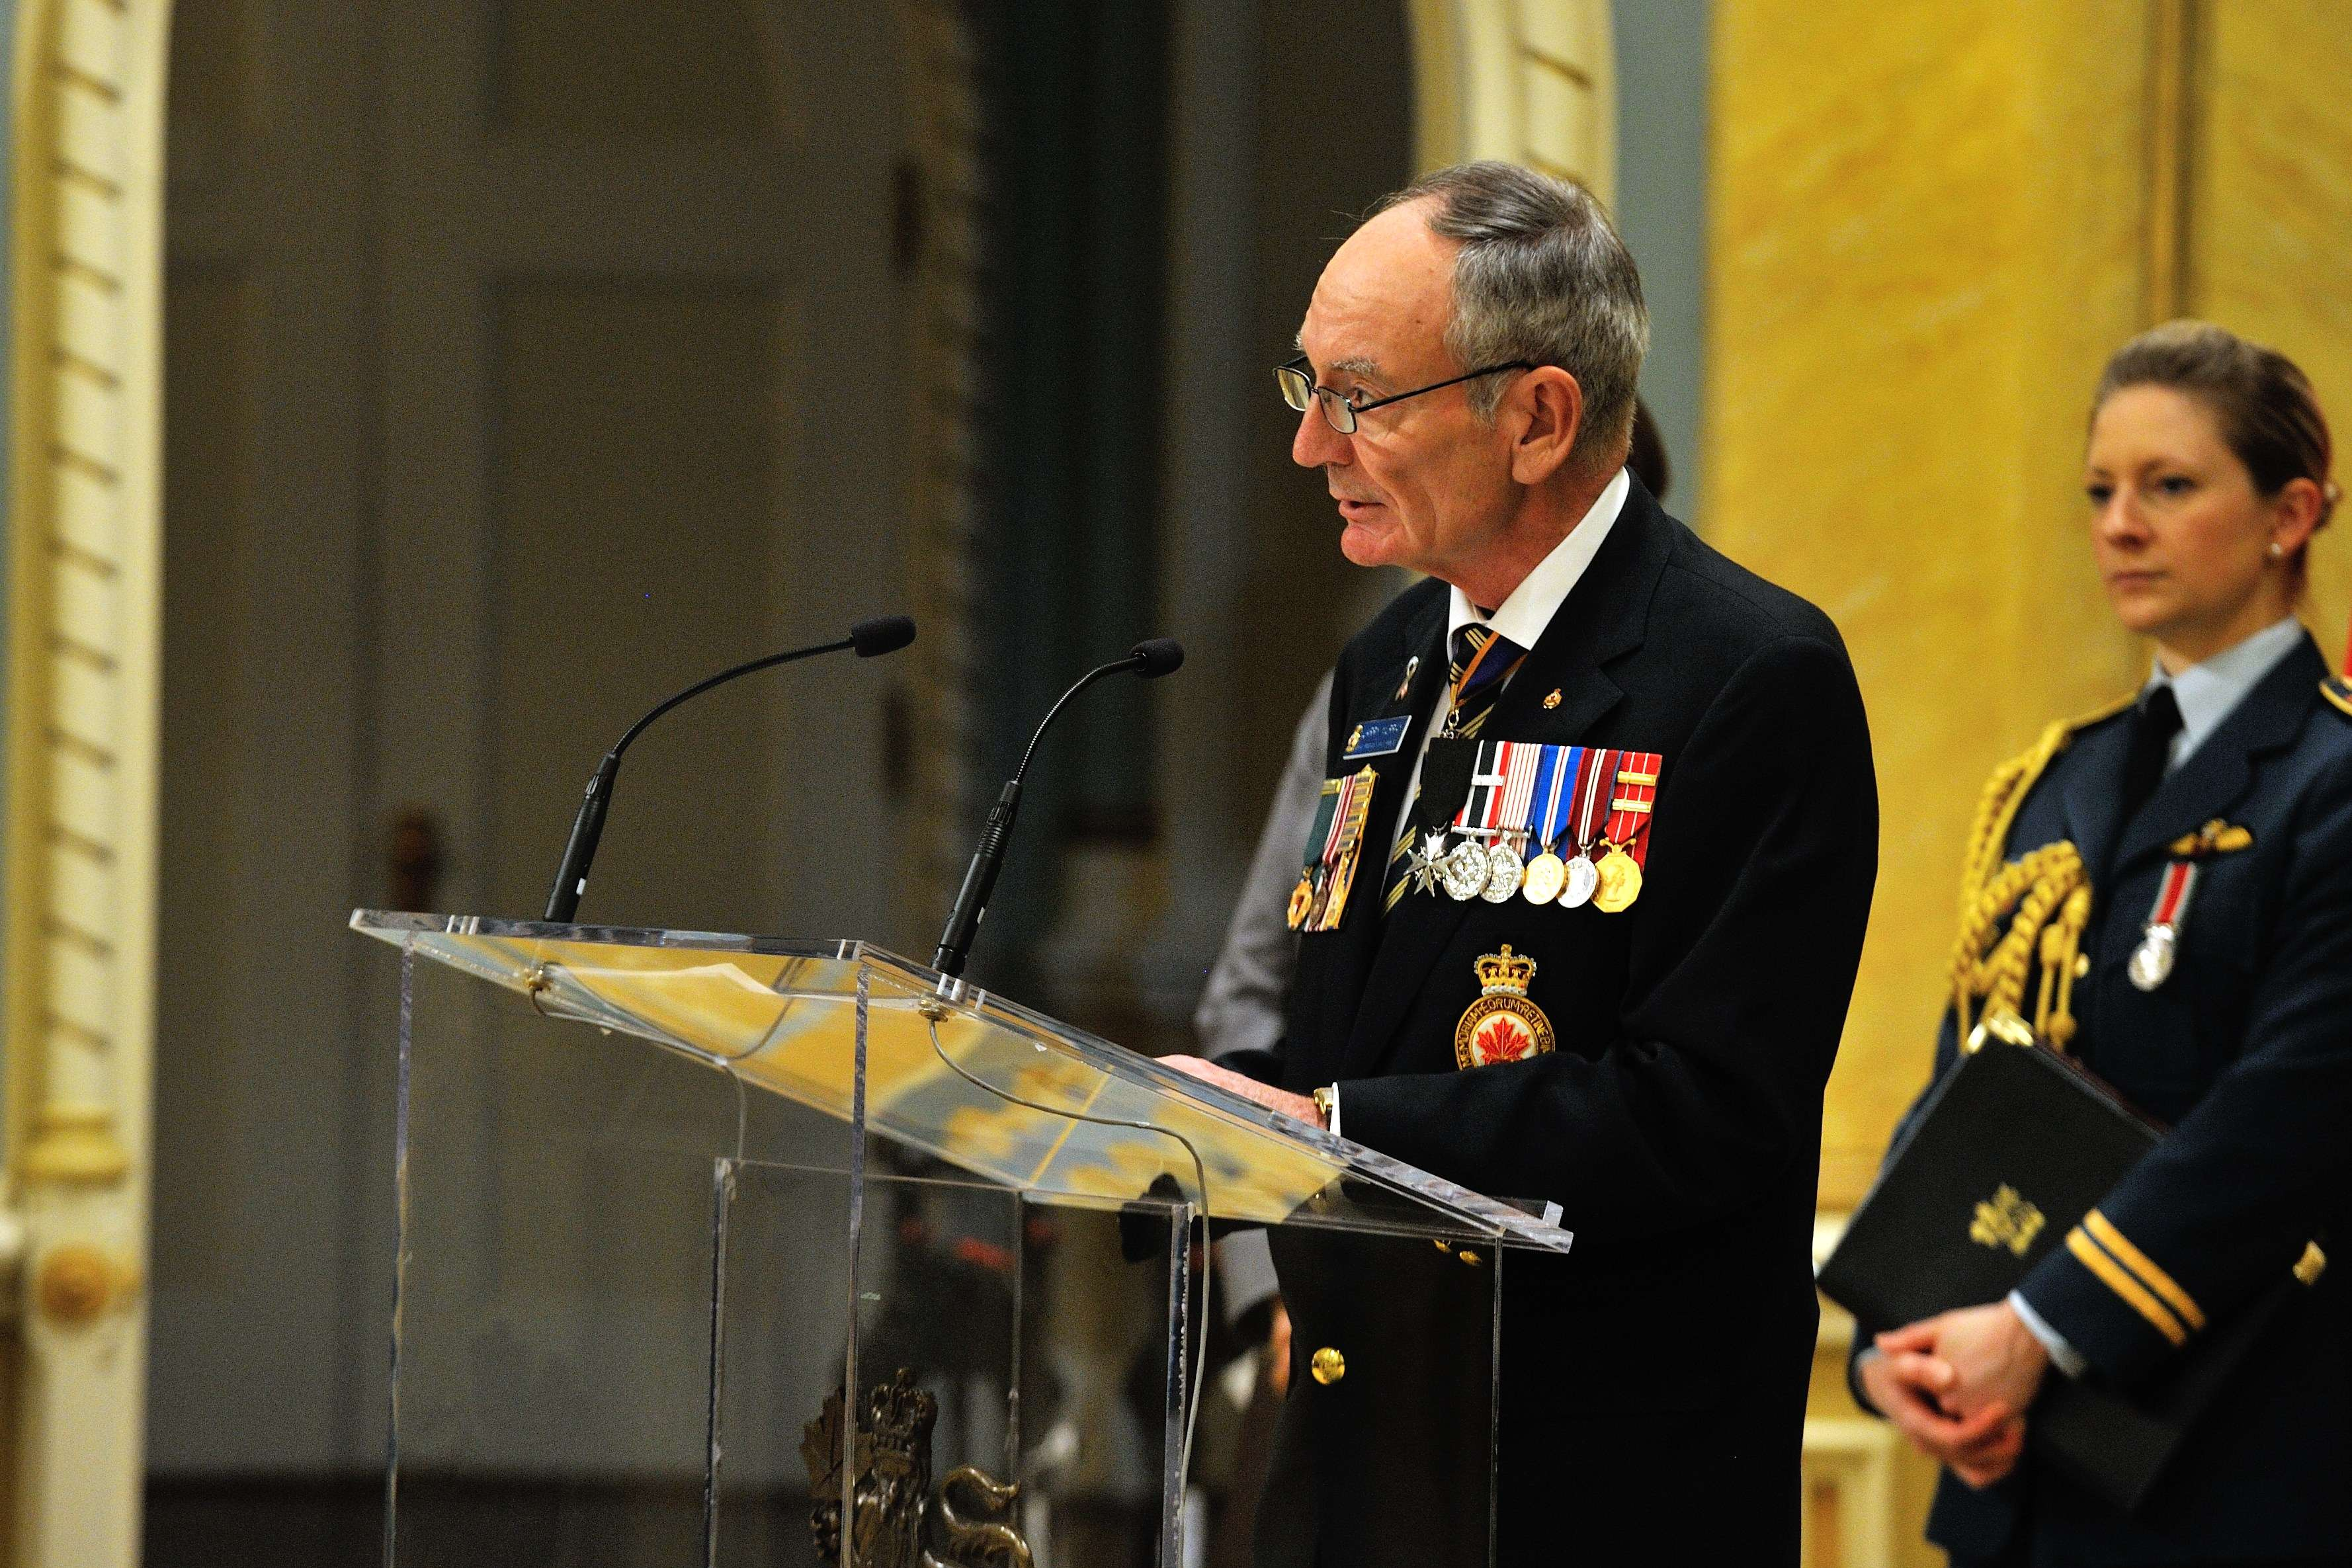 Vice-Admiral (Ret'd) Larry Murray, grand president of The Royal Canadian Legion, also delivered an address on this occasion.